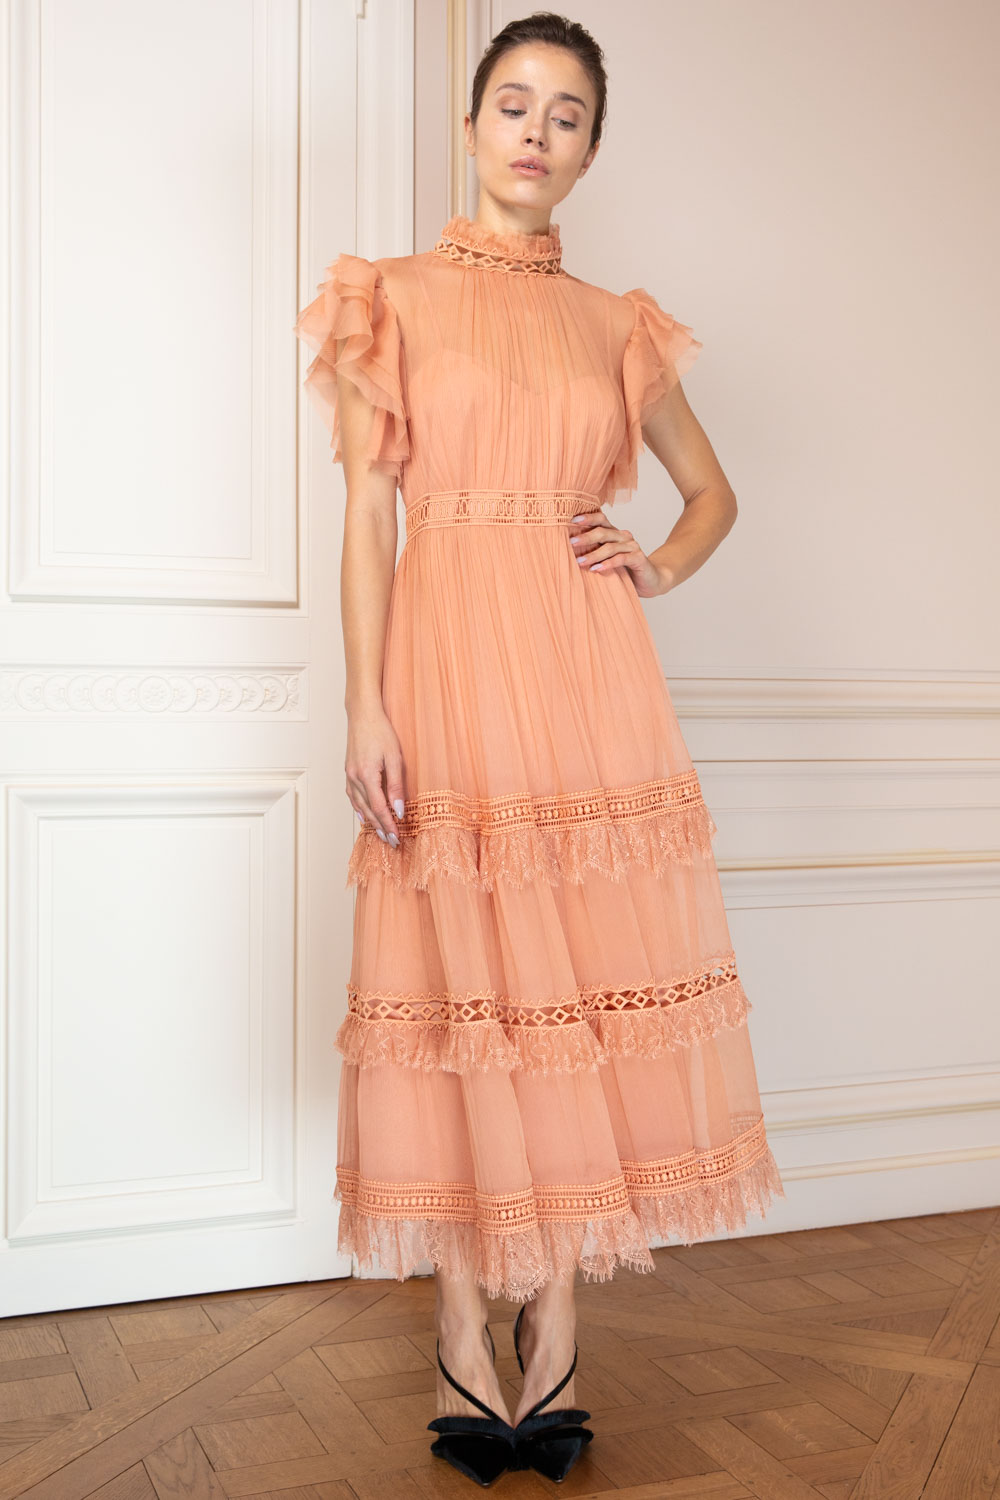 Apricot tea gown with ruffled collar and sleeves, openwork lace and fringed tiers